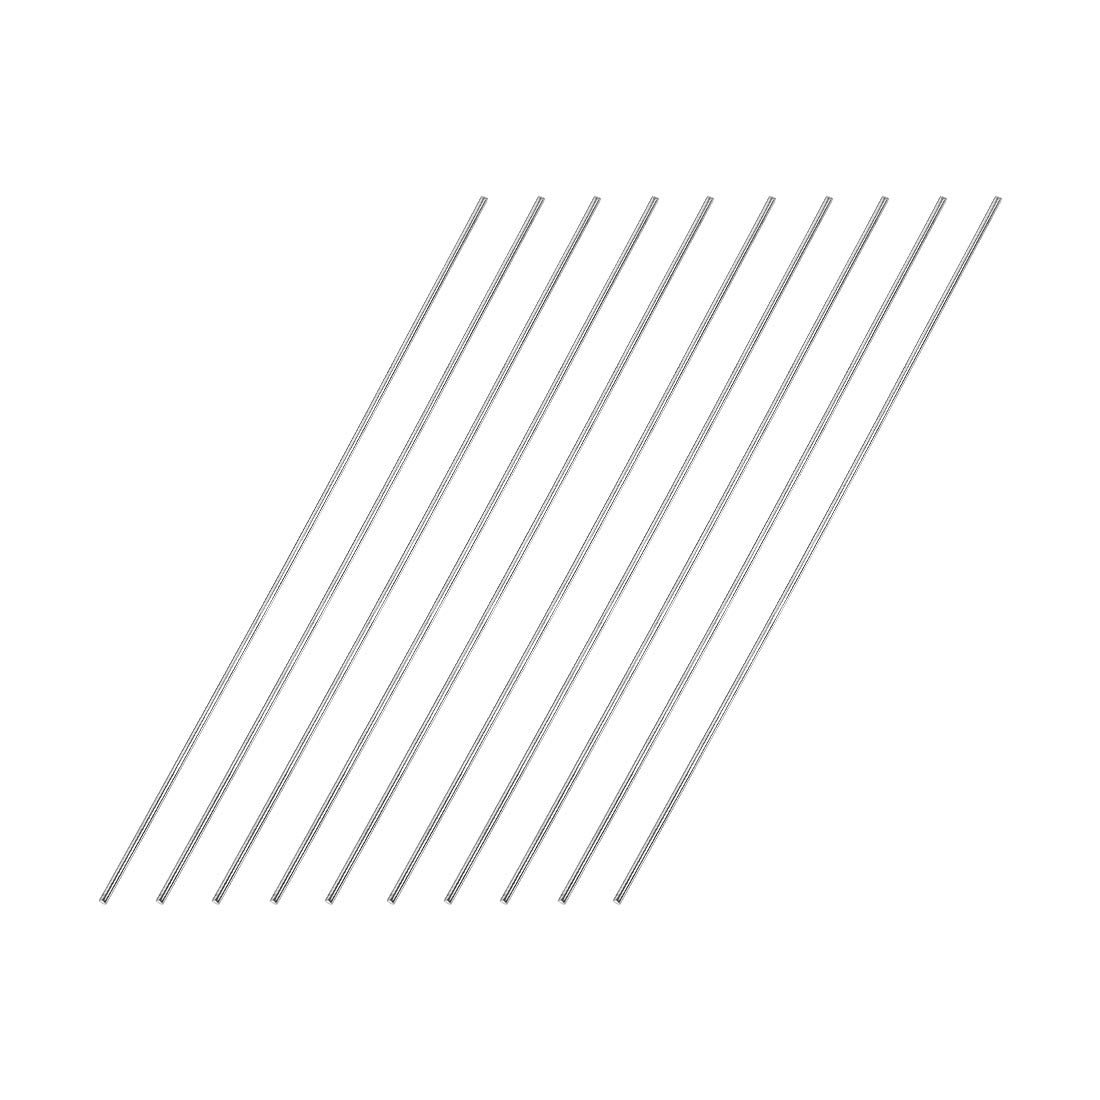 10pcs uxcell 1.5mm x 250mm 304 Stainless Steel Solid Round Rod for DIY Craft